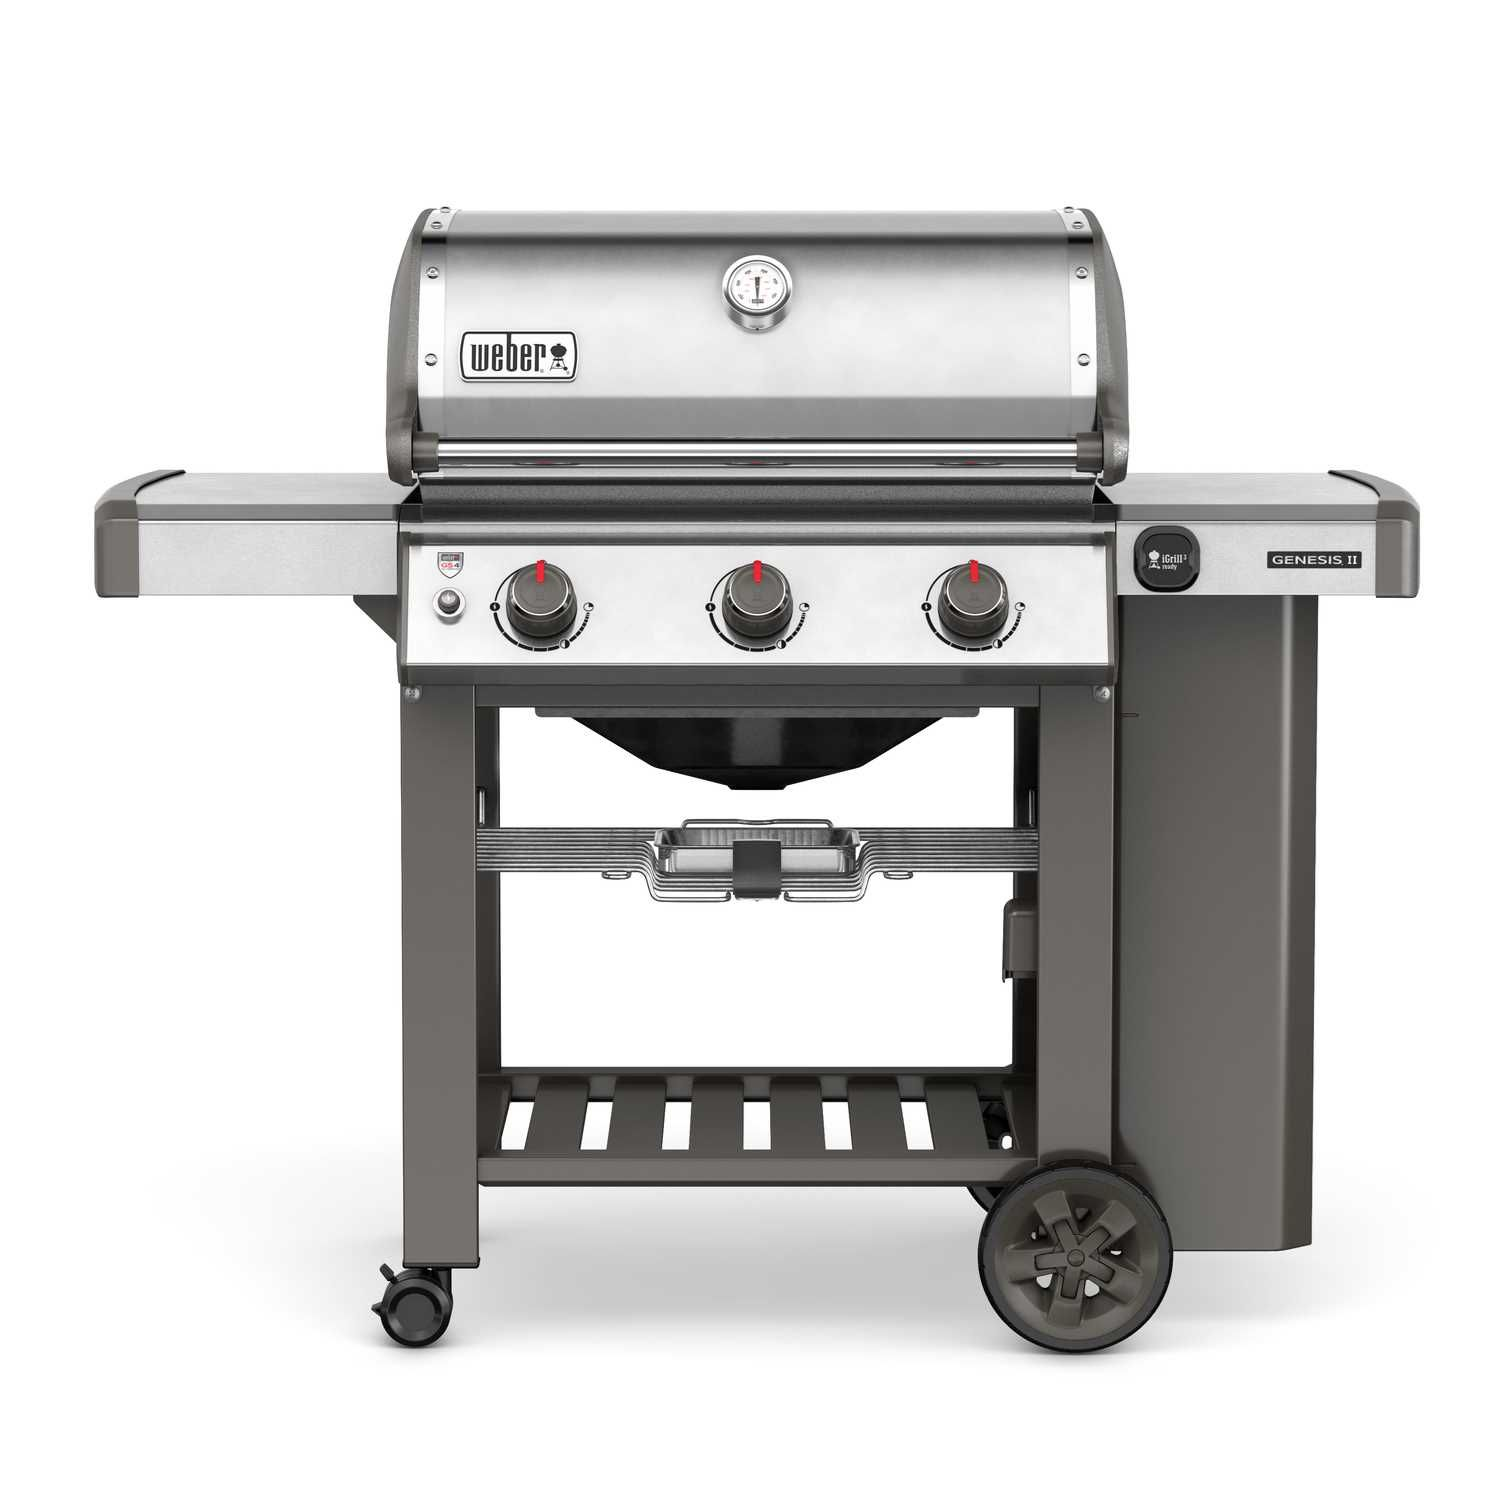 Weber Genesis Ii S 310 3 Burners Propane Grill Stainless Steel 37500 Btu Ace Hardware Natural Gas Grill Gas Grill Best Gas Grills